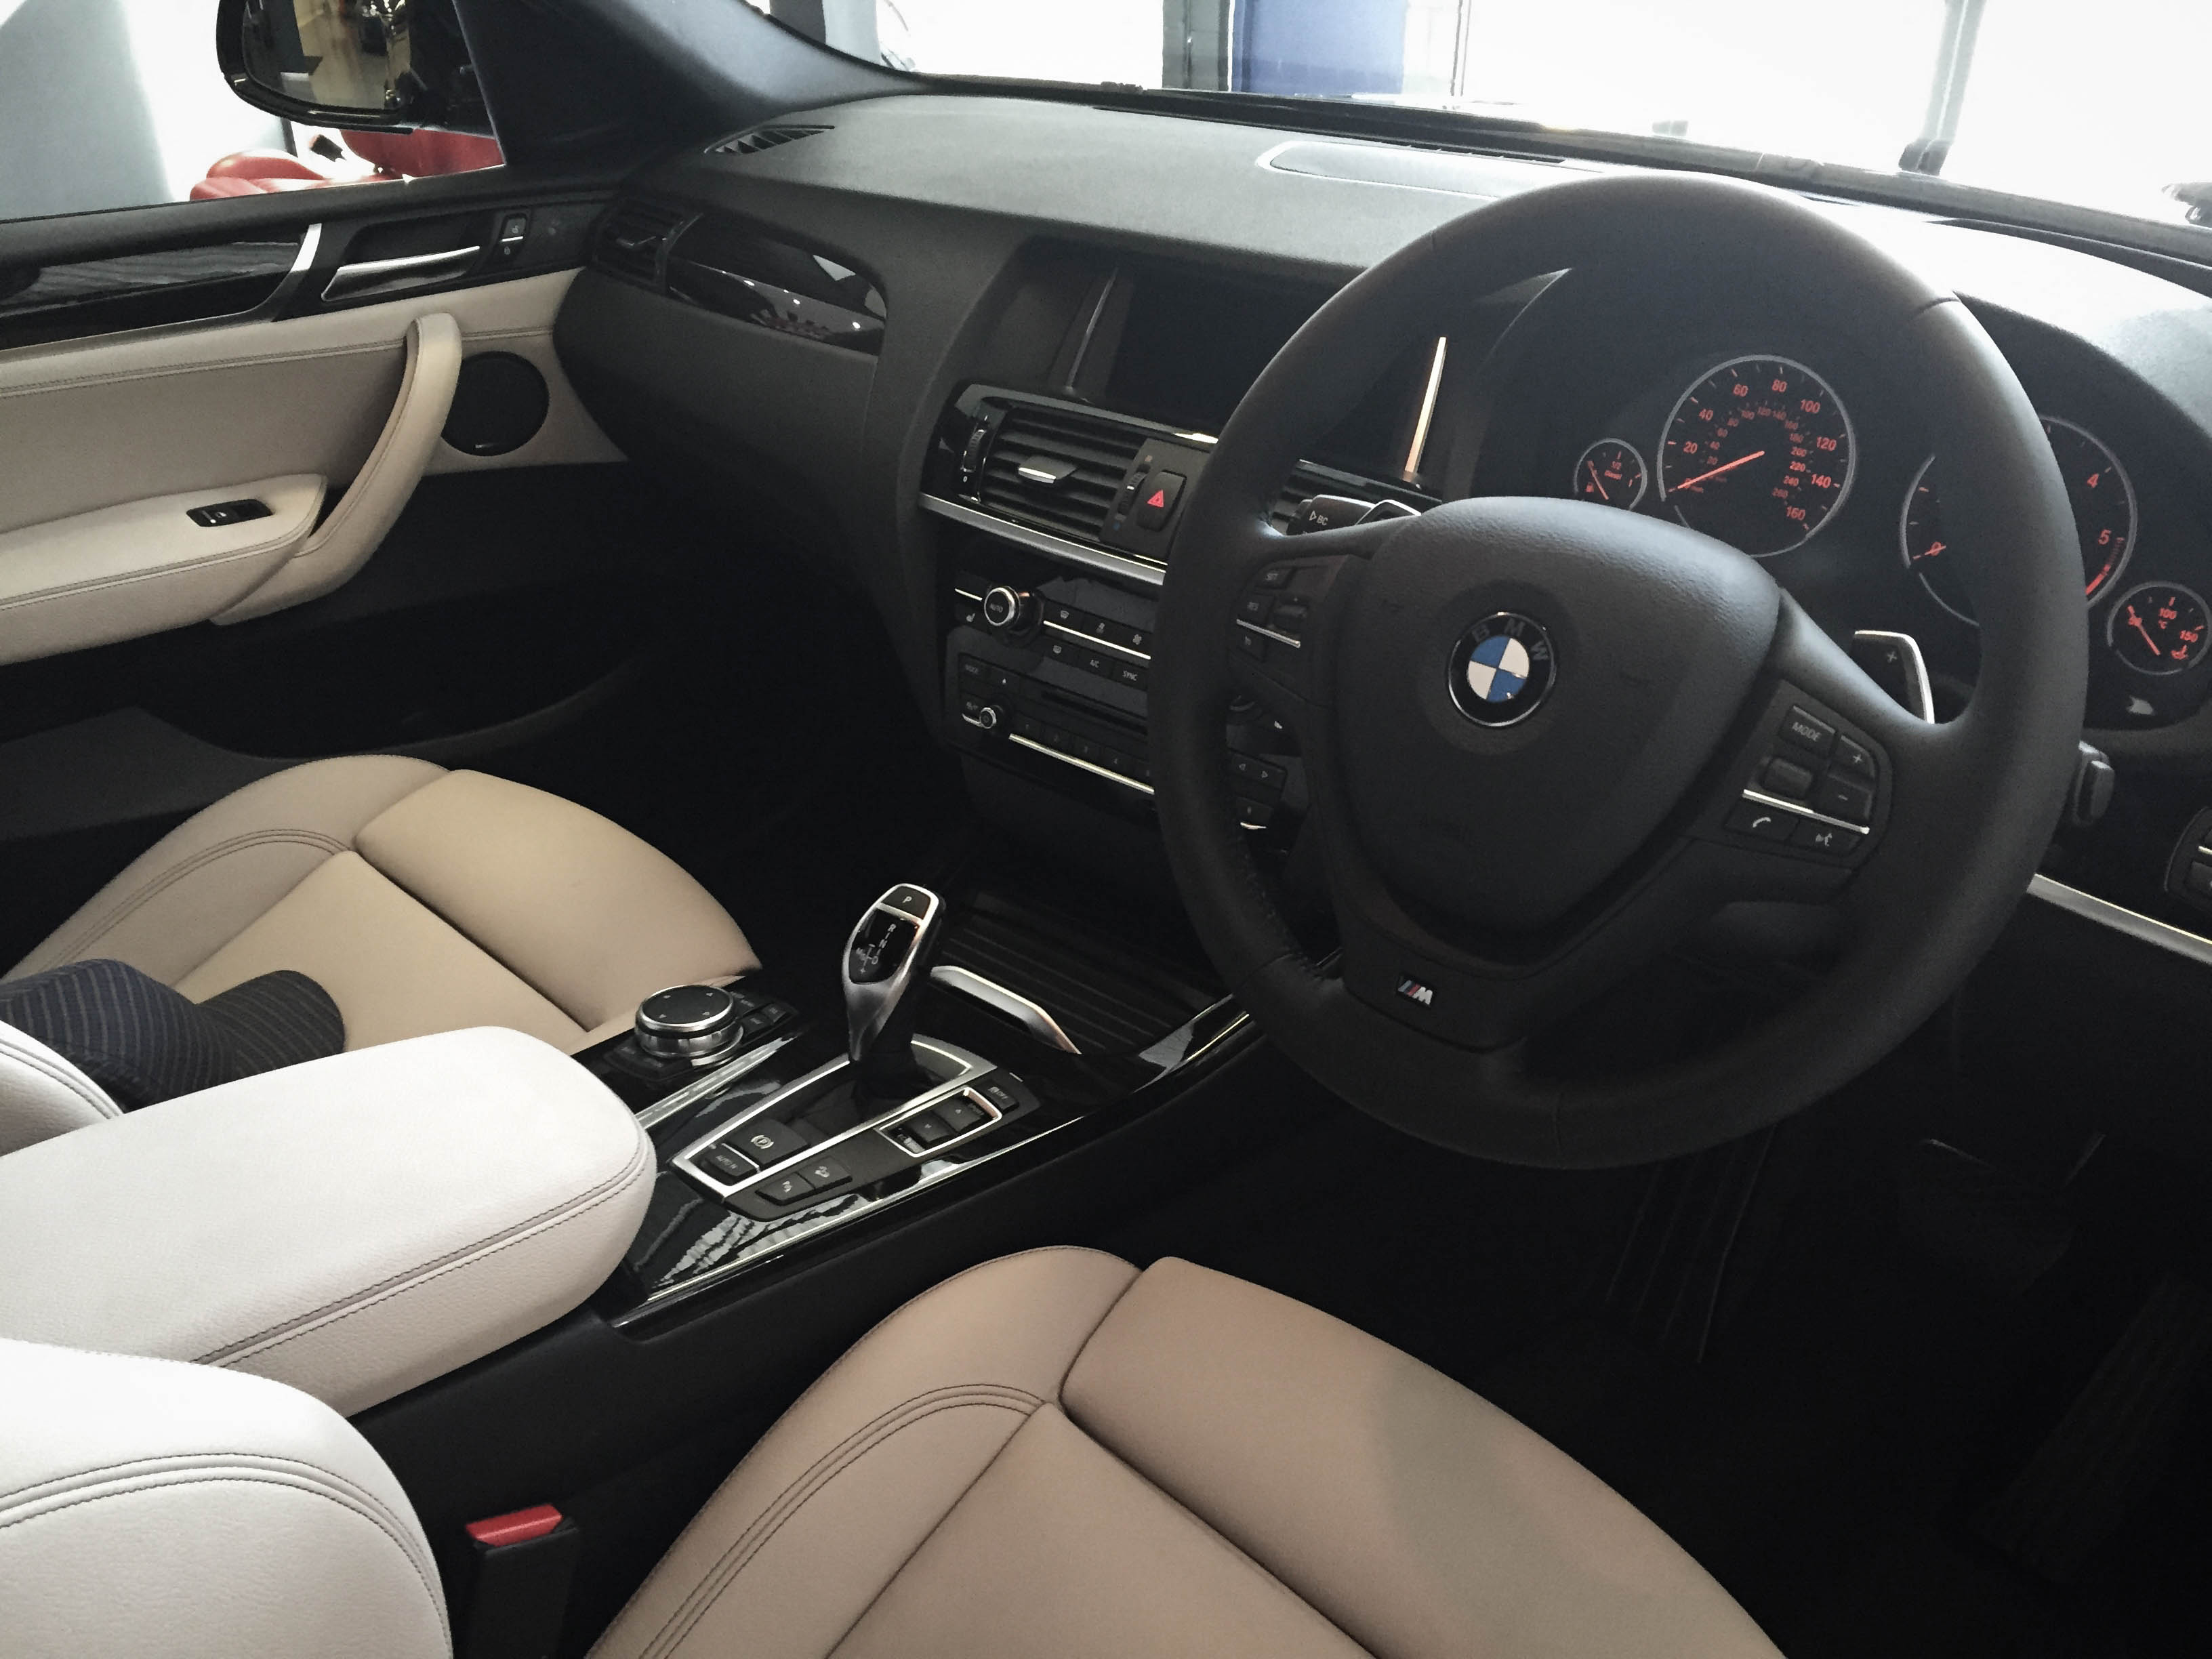 BMW X4 – Detailed Interior